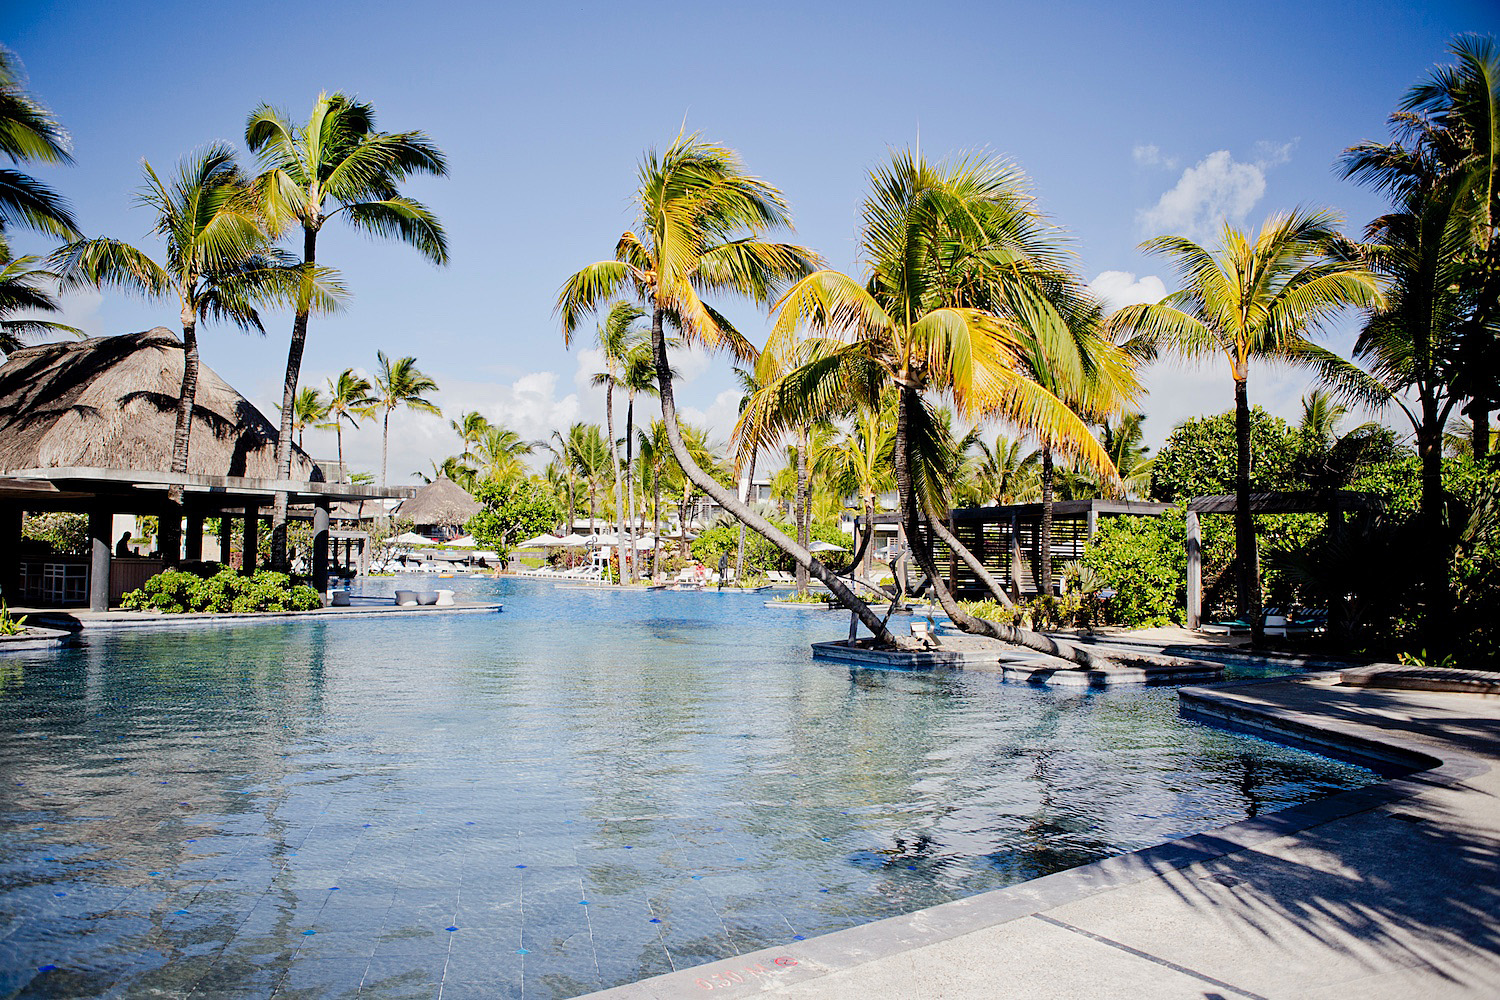 Long Beach Mauritius – Long Beach Golf & Spa Resort - hotel long beach mauritius all inclusive - Mauritius all inclusive hotel